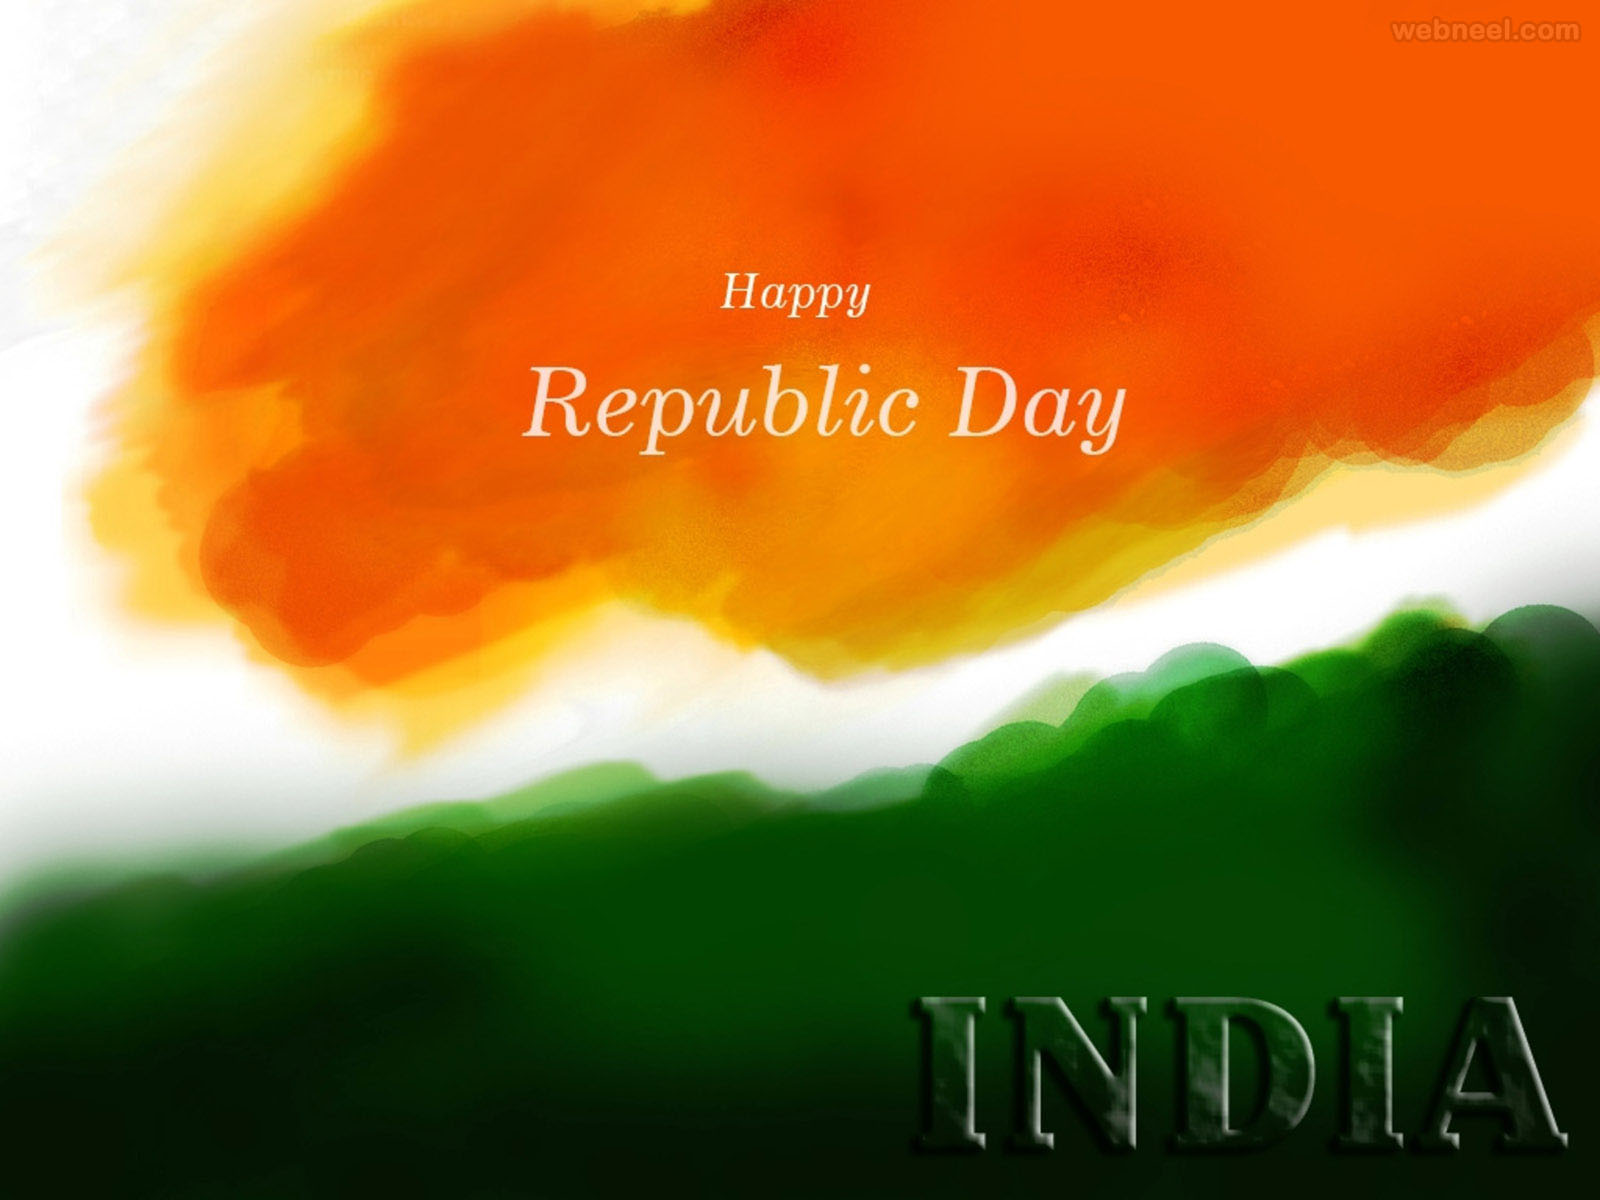 india republic day wallpaper